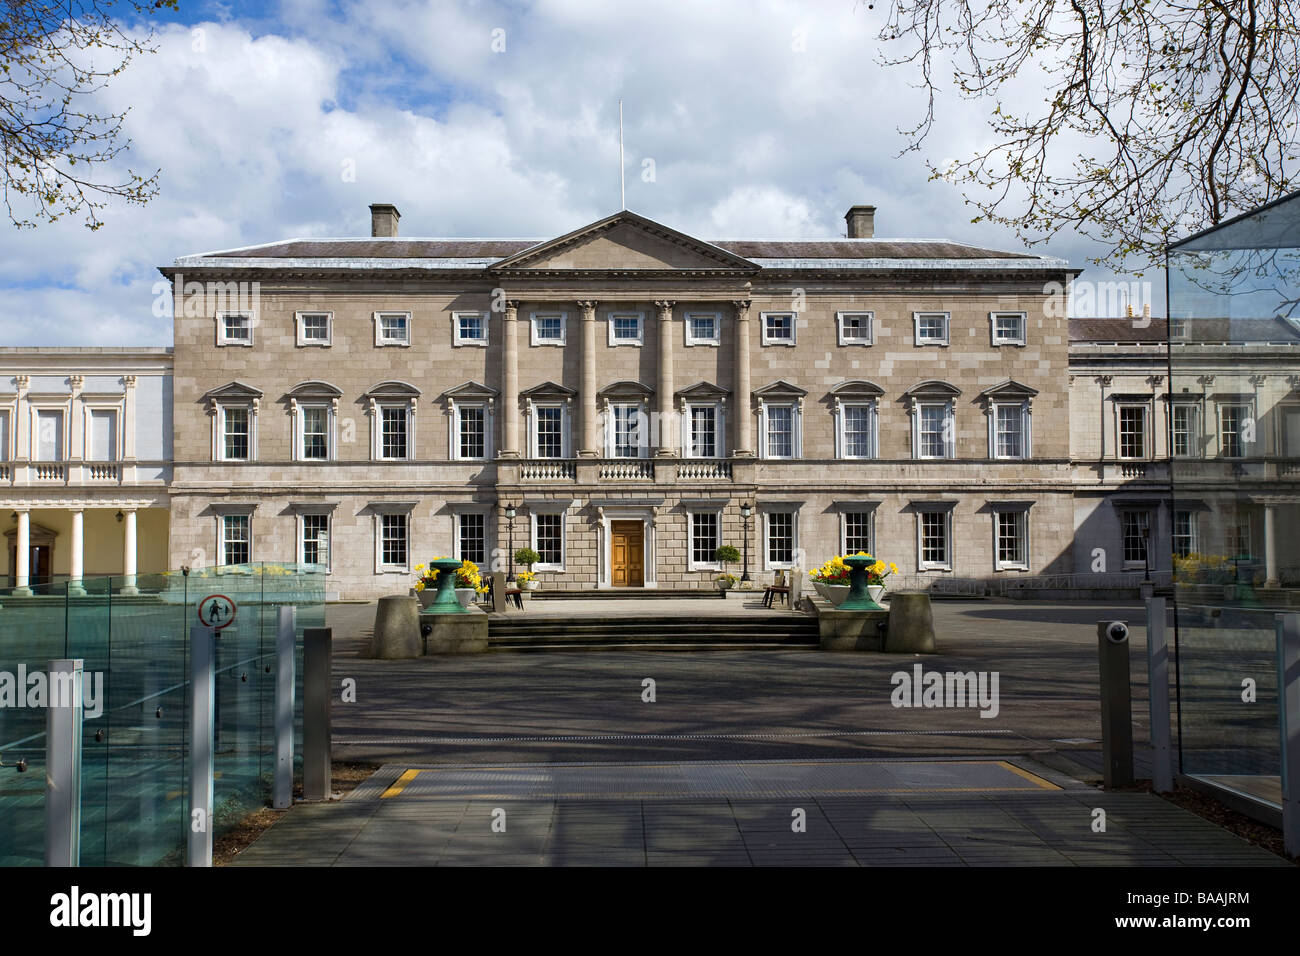 Leinster House, Dail Eireann, Kildare St Dublin which houses the Irish National Parliament Stock Photo